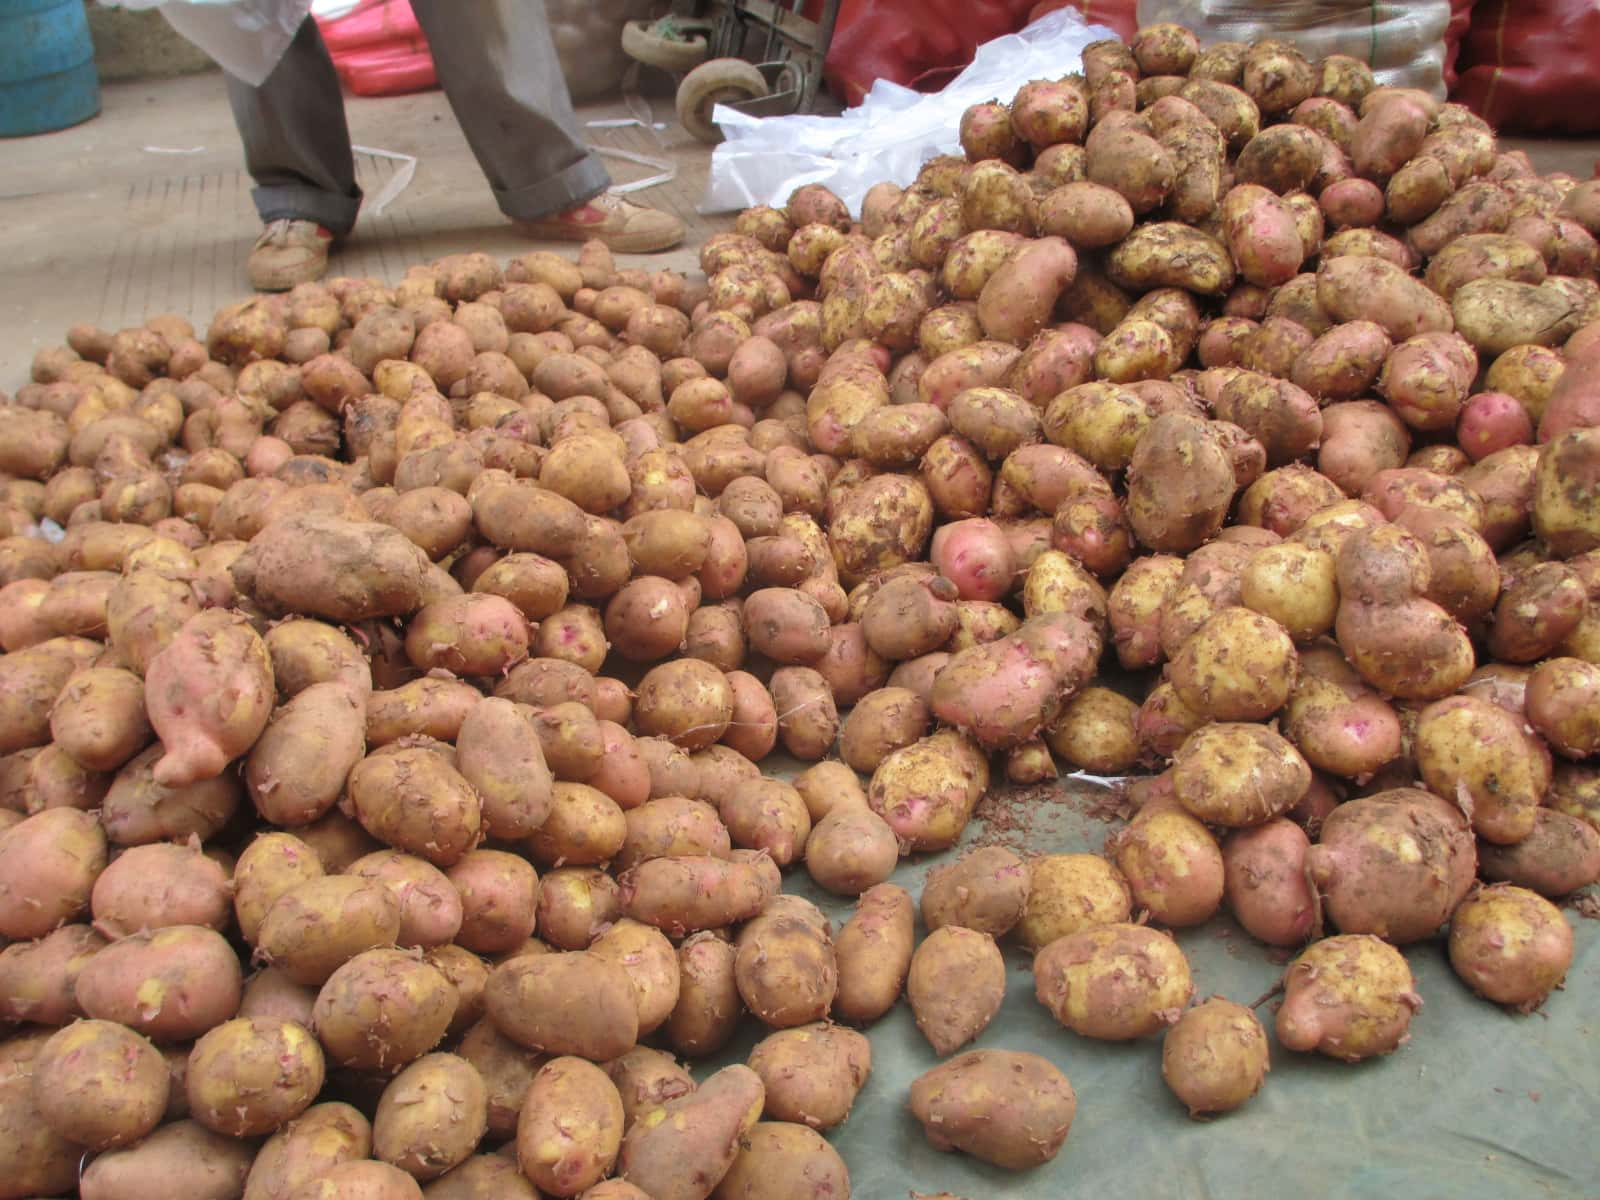 Improved potatoes for millions in Asia